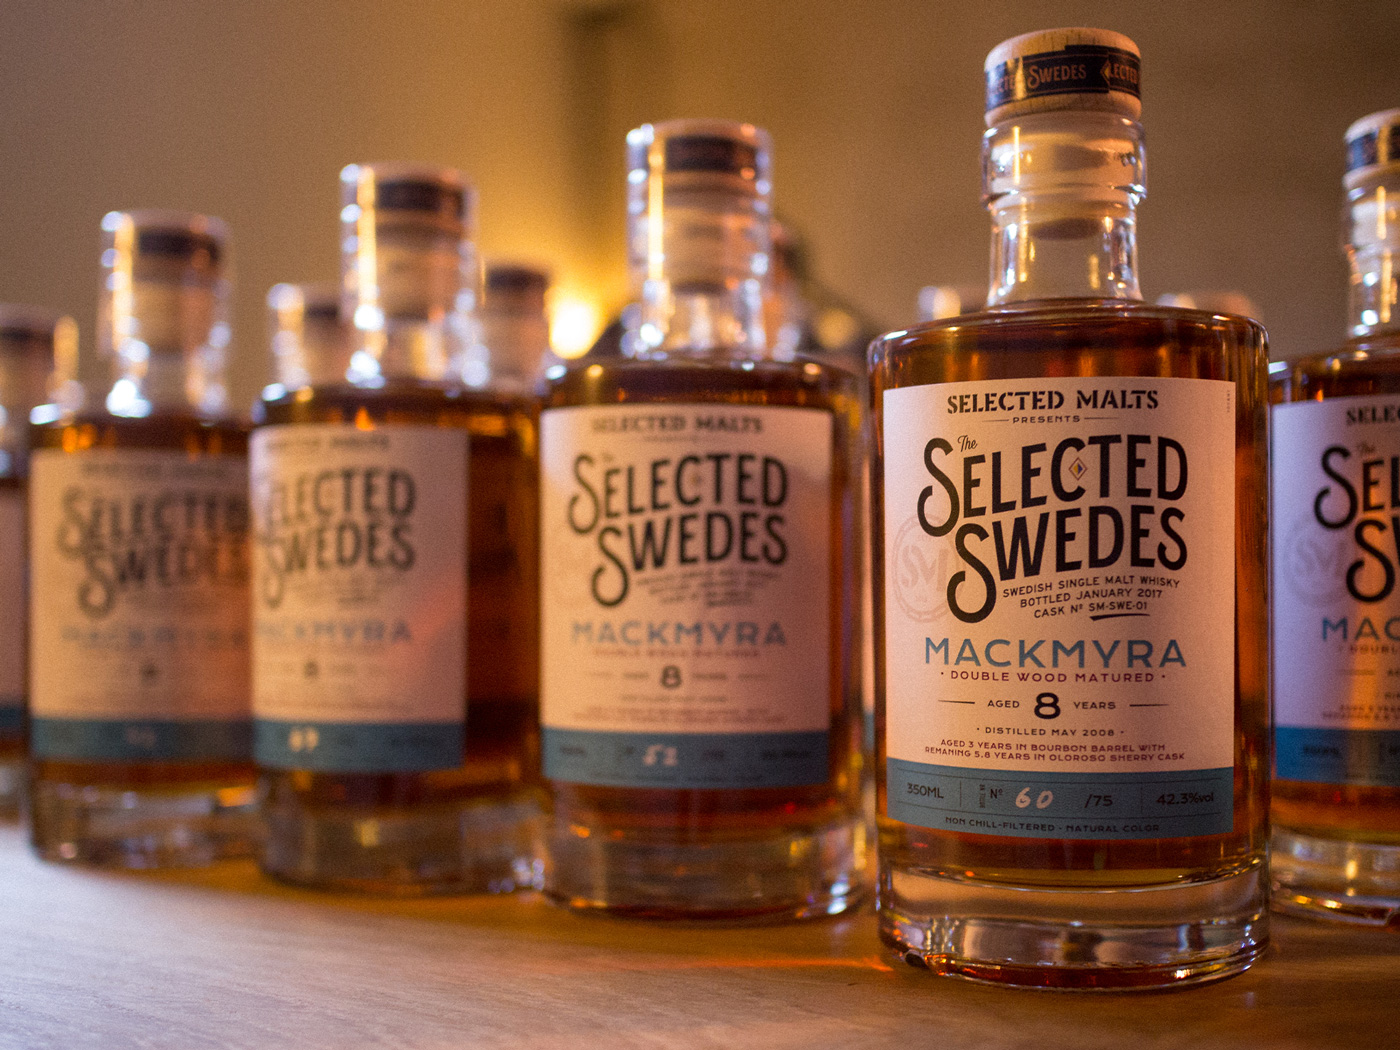 Selected Malts Selected Swedes Mackmyra Bottles Lineup